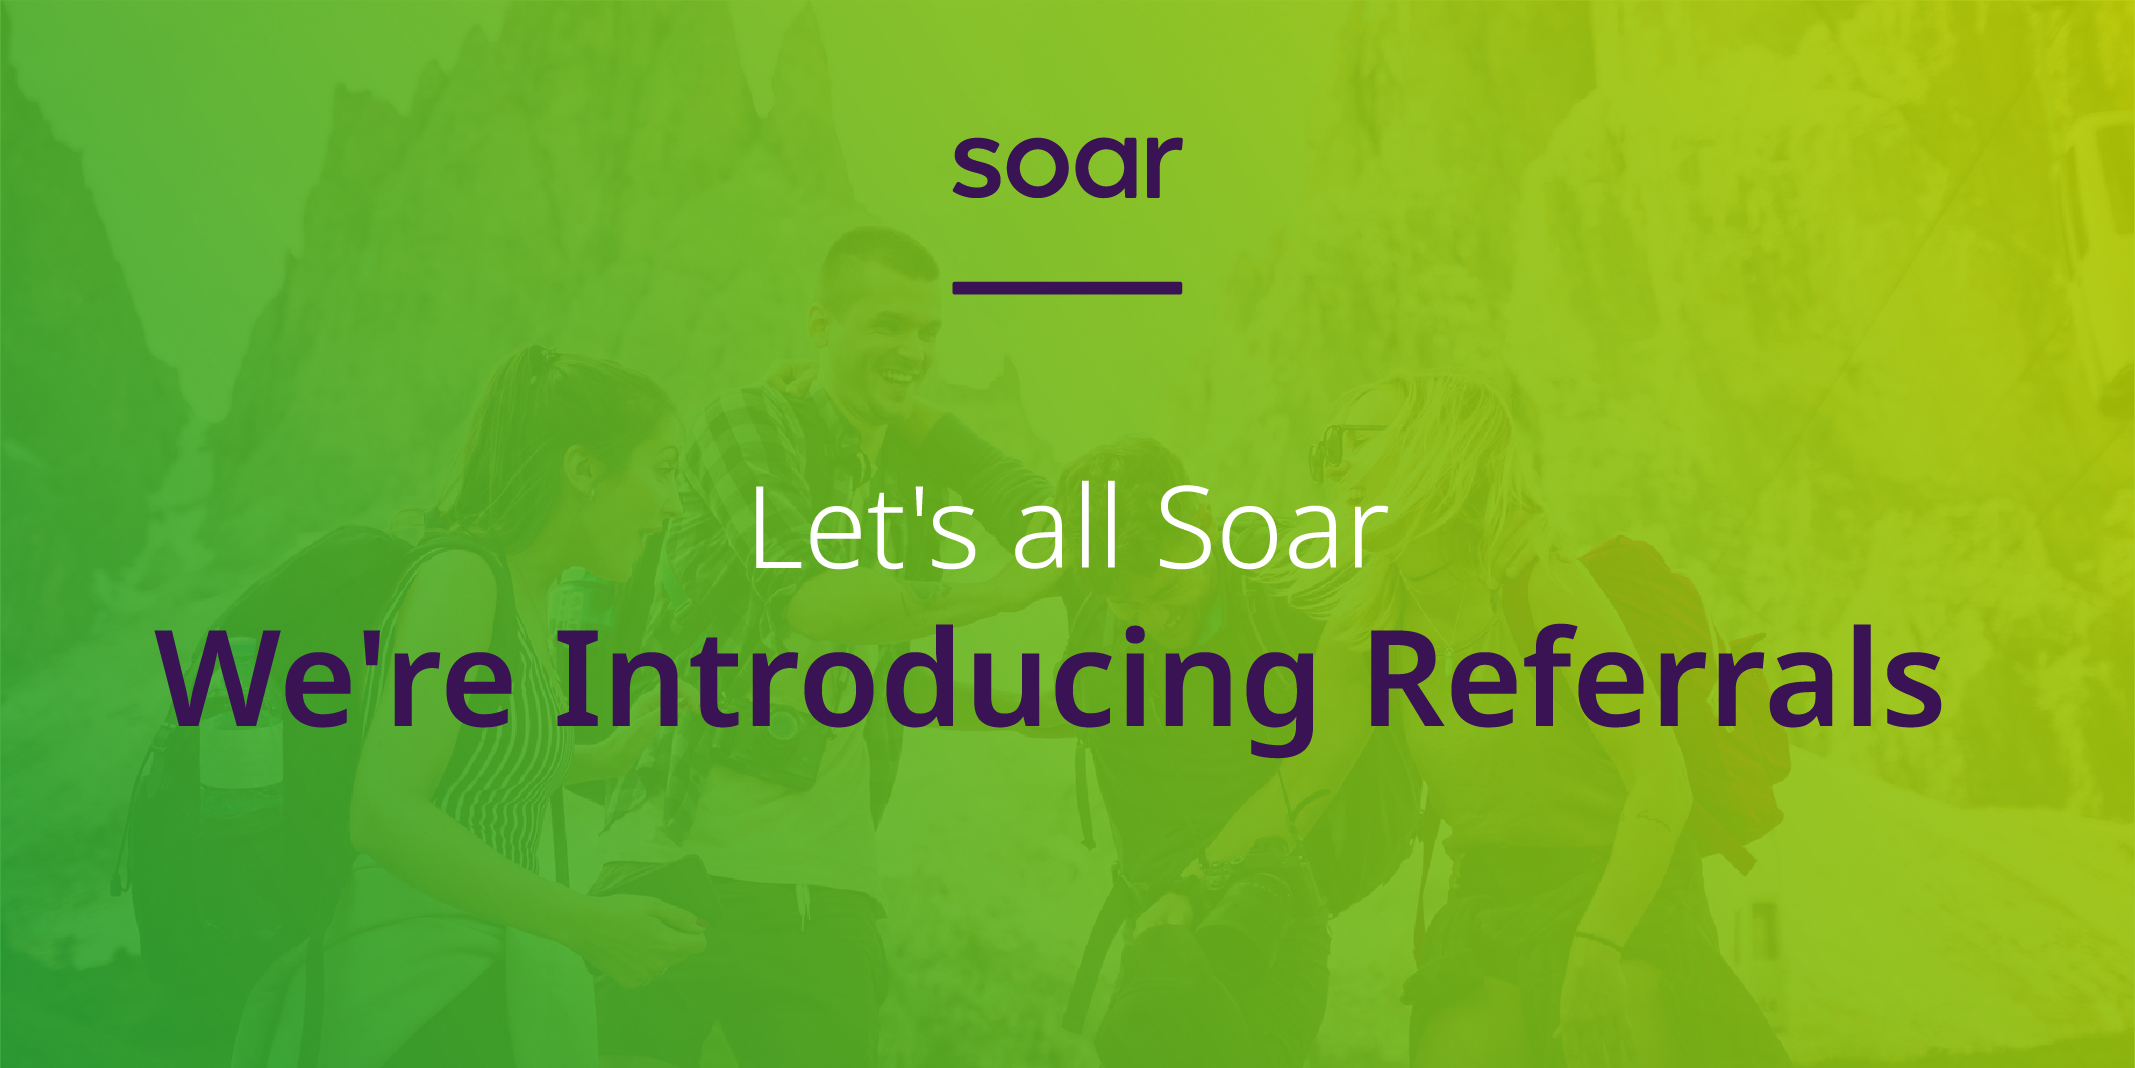 Let's all Soar - We're Introducing Referrals